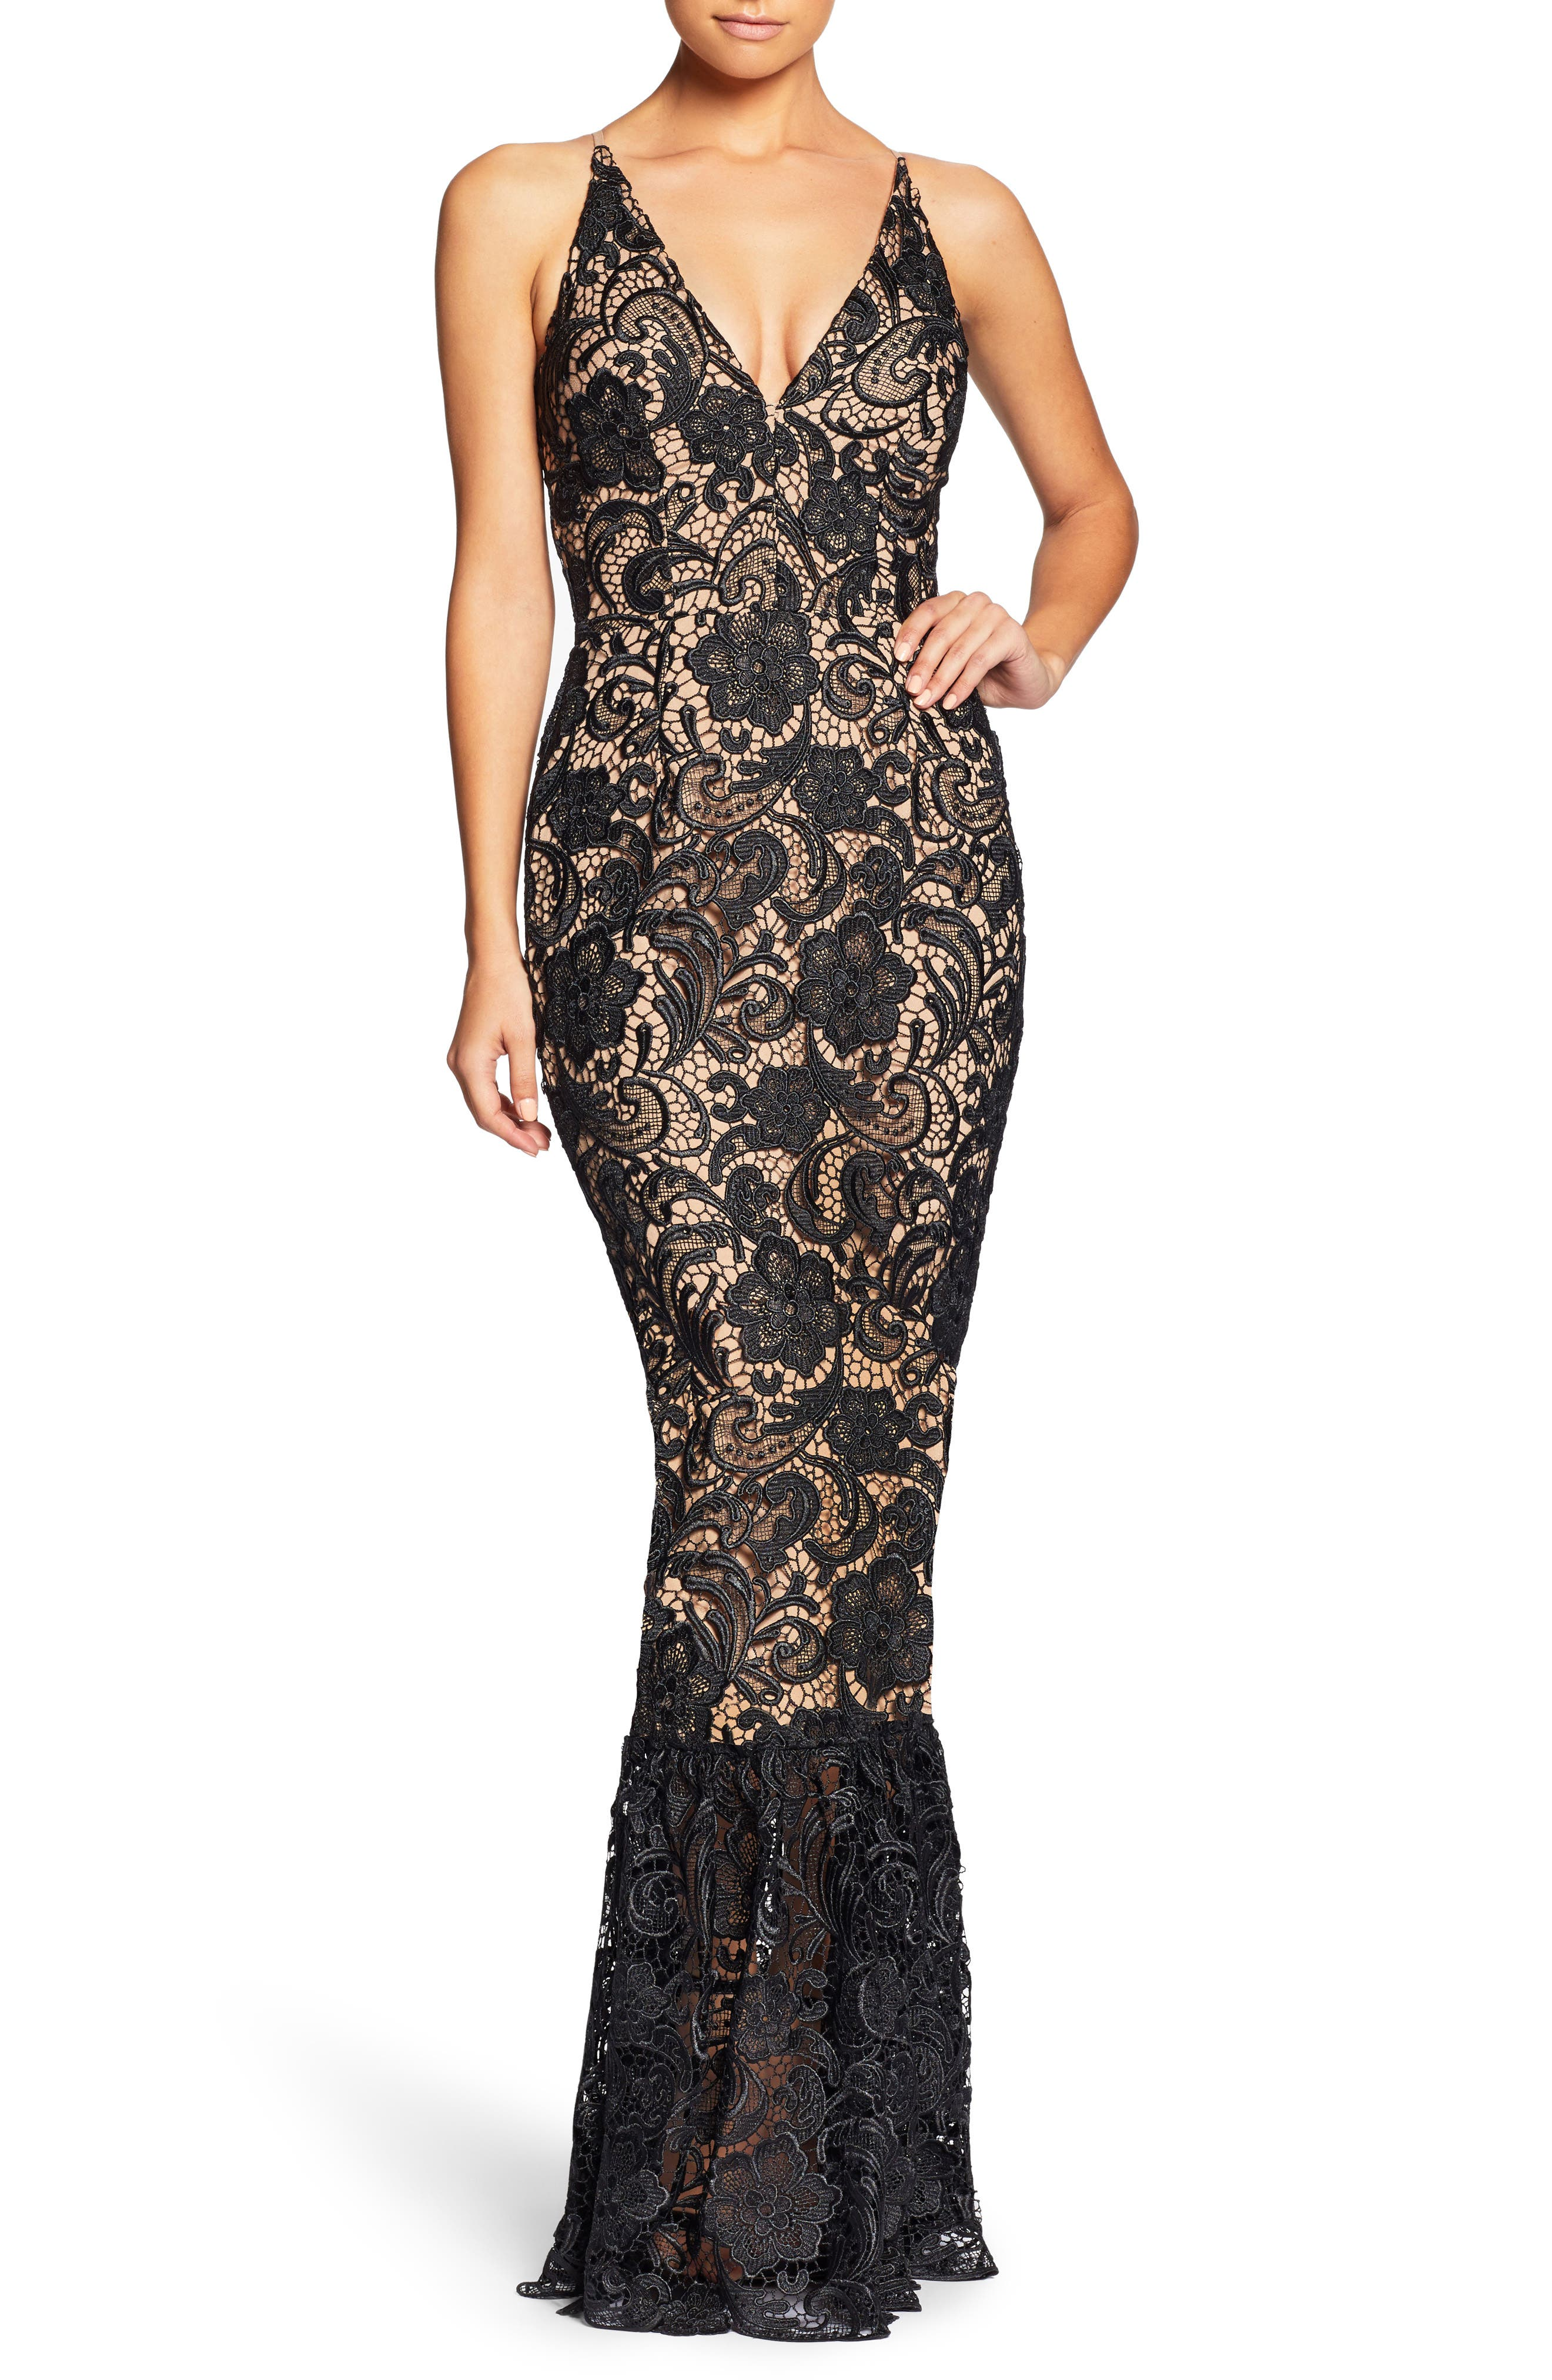 Sophia Crochet Lace Mermaid Gown,                         Main,                         color, Black/ Nude